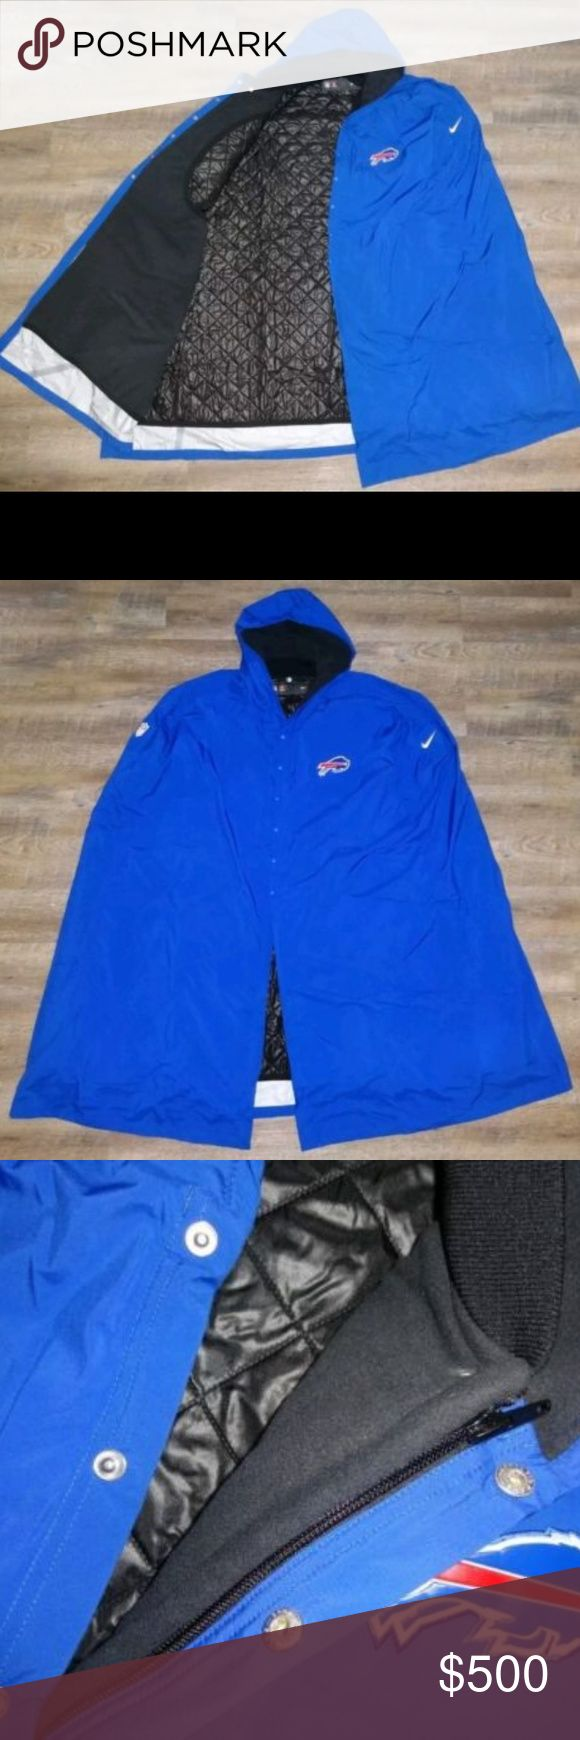 Nike NFL Buffalo Bills 2017 Team Issued Cape Parka Nike NFL Buffalo Bills 2017 Team Issued Cape Parka Quilted Sideline Jacket. NOT FOUND IN STORES!! Nike Jackets & Coats Trench Coats